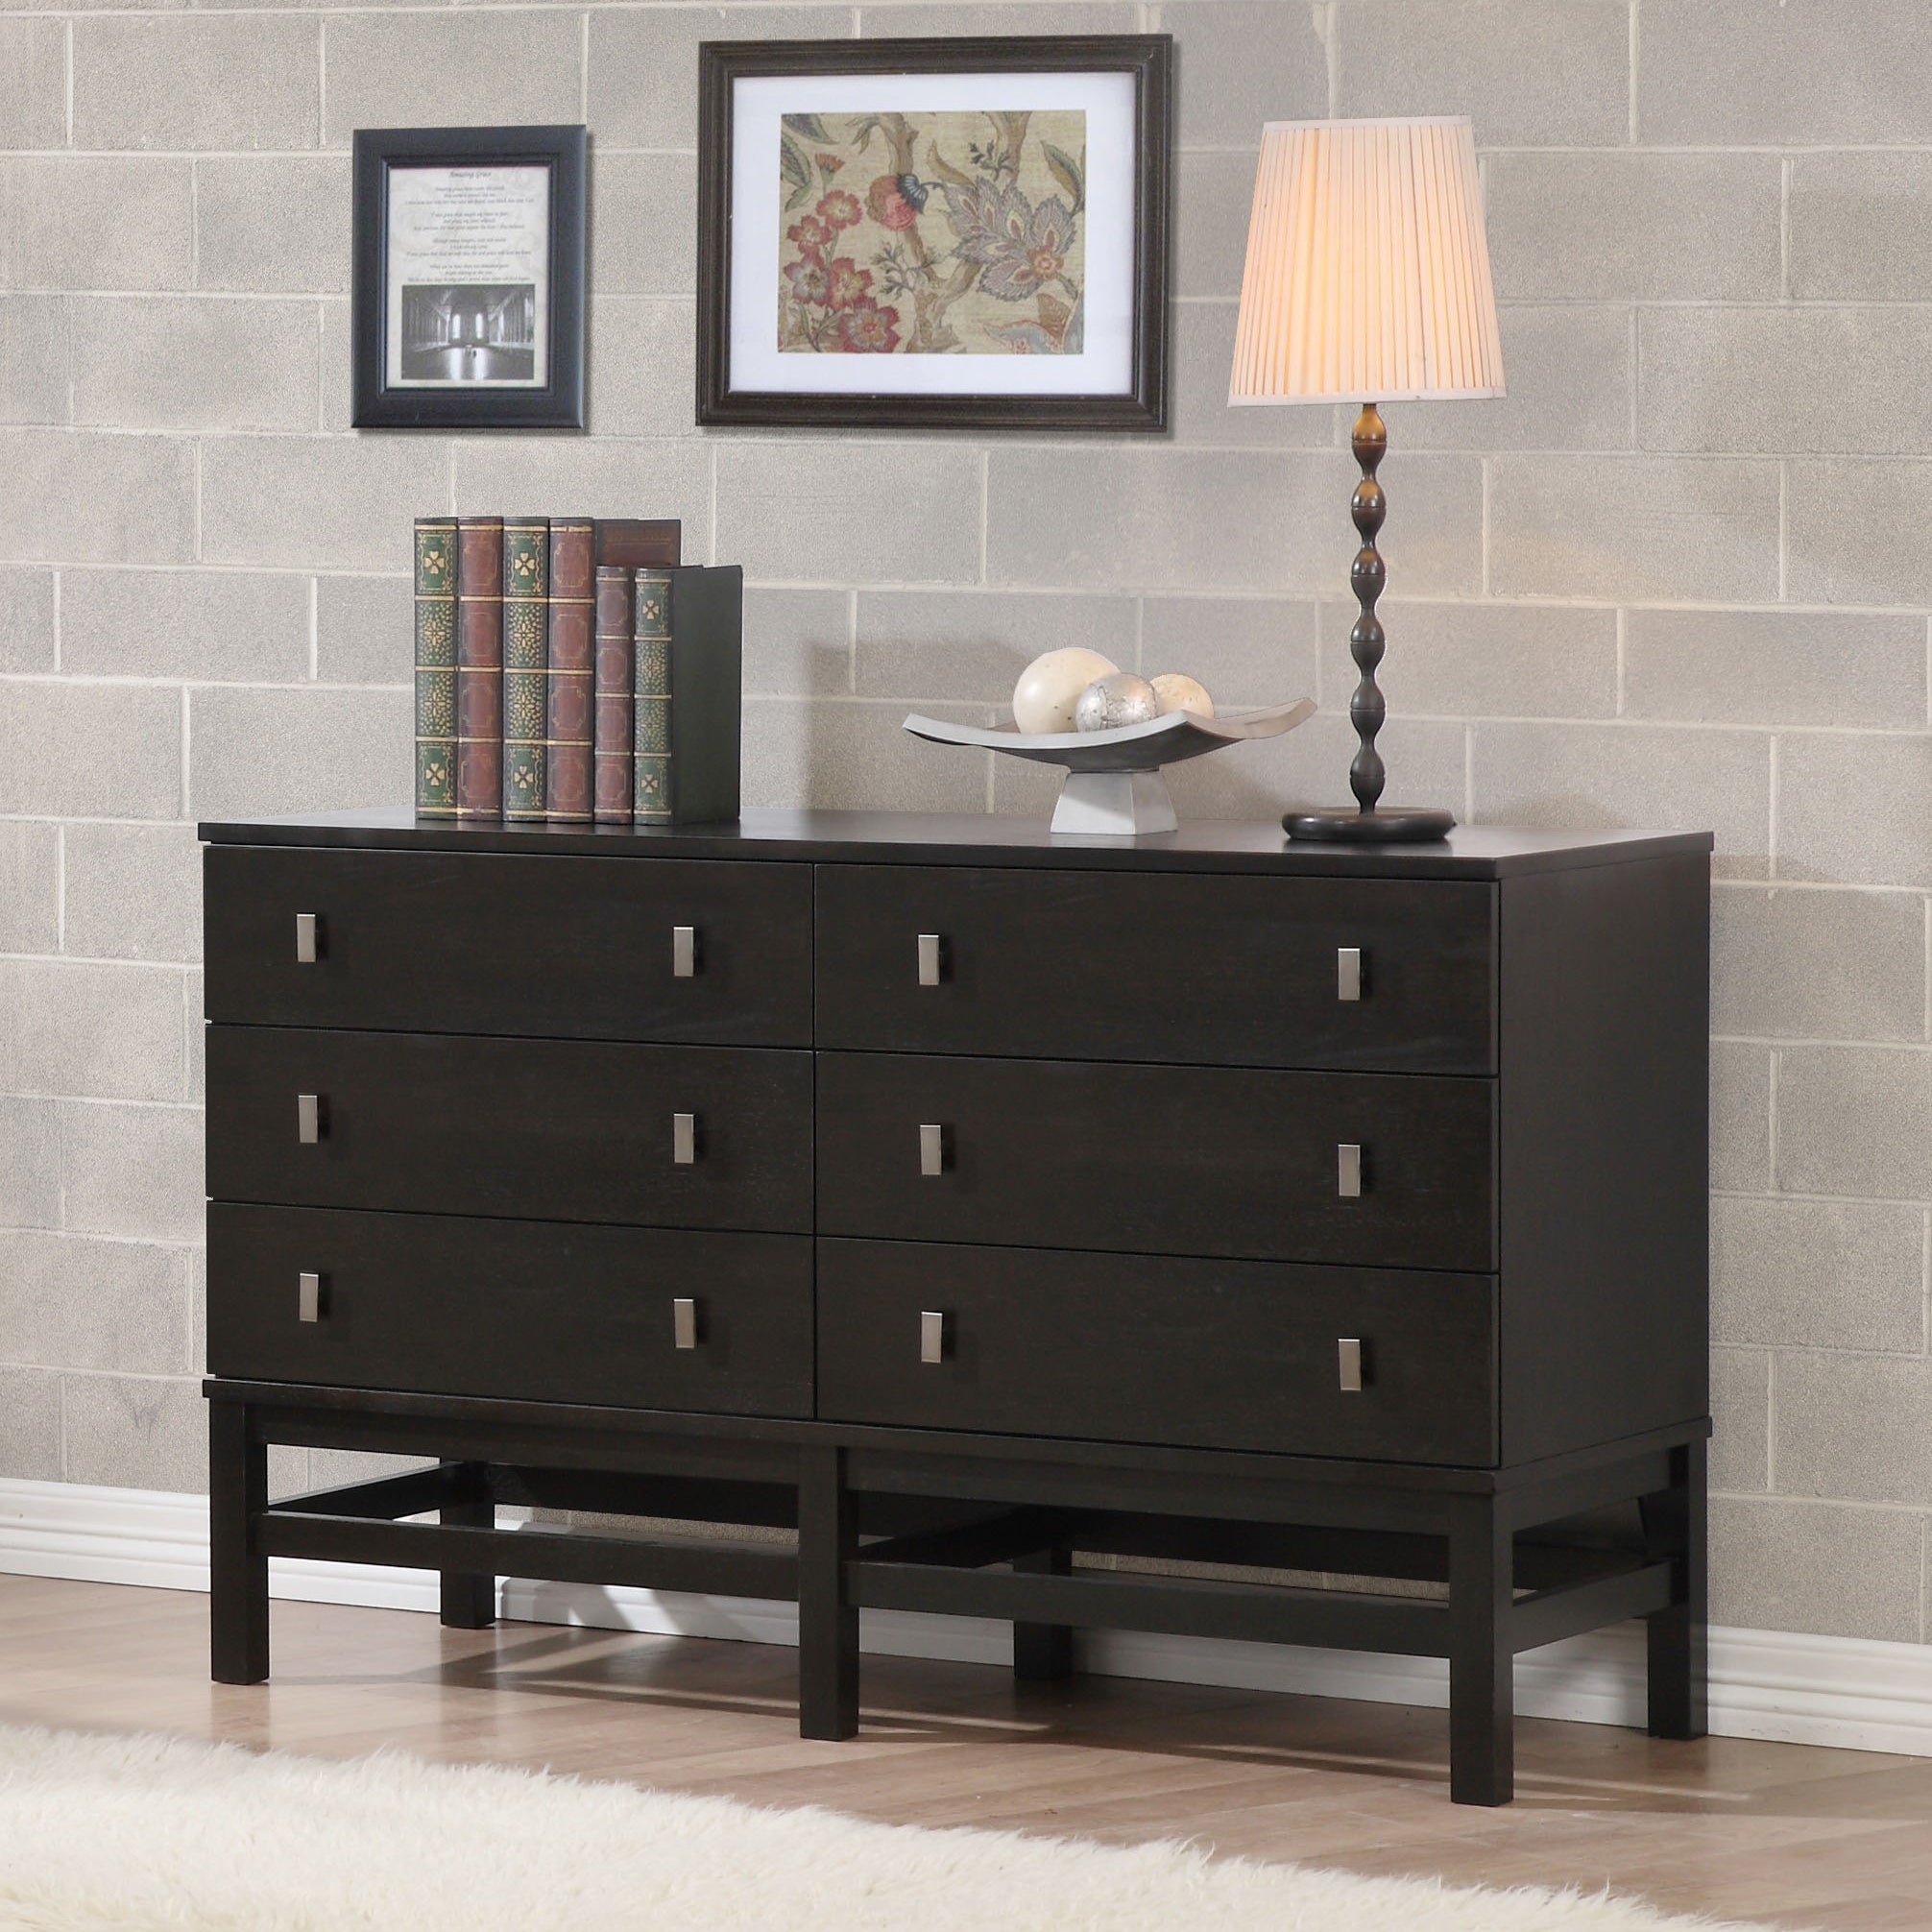 nursery hmpt furniture wash drawer gray canyon dd dresser sw stone ls baby hampton soho